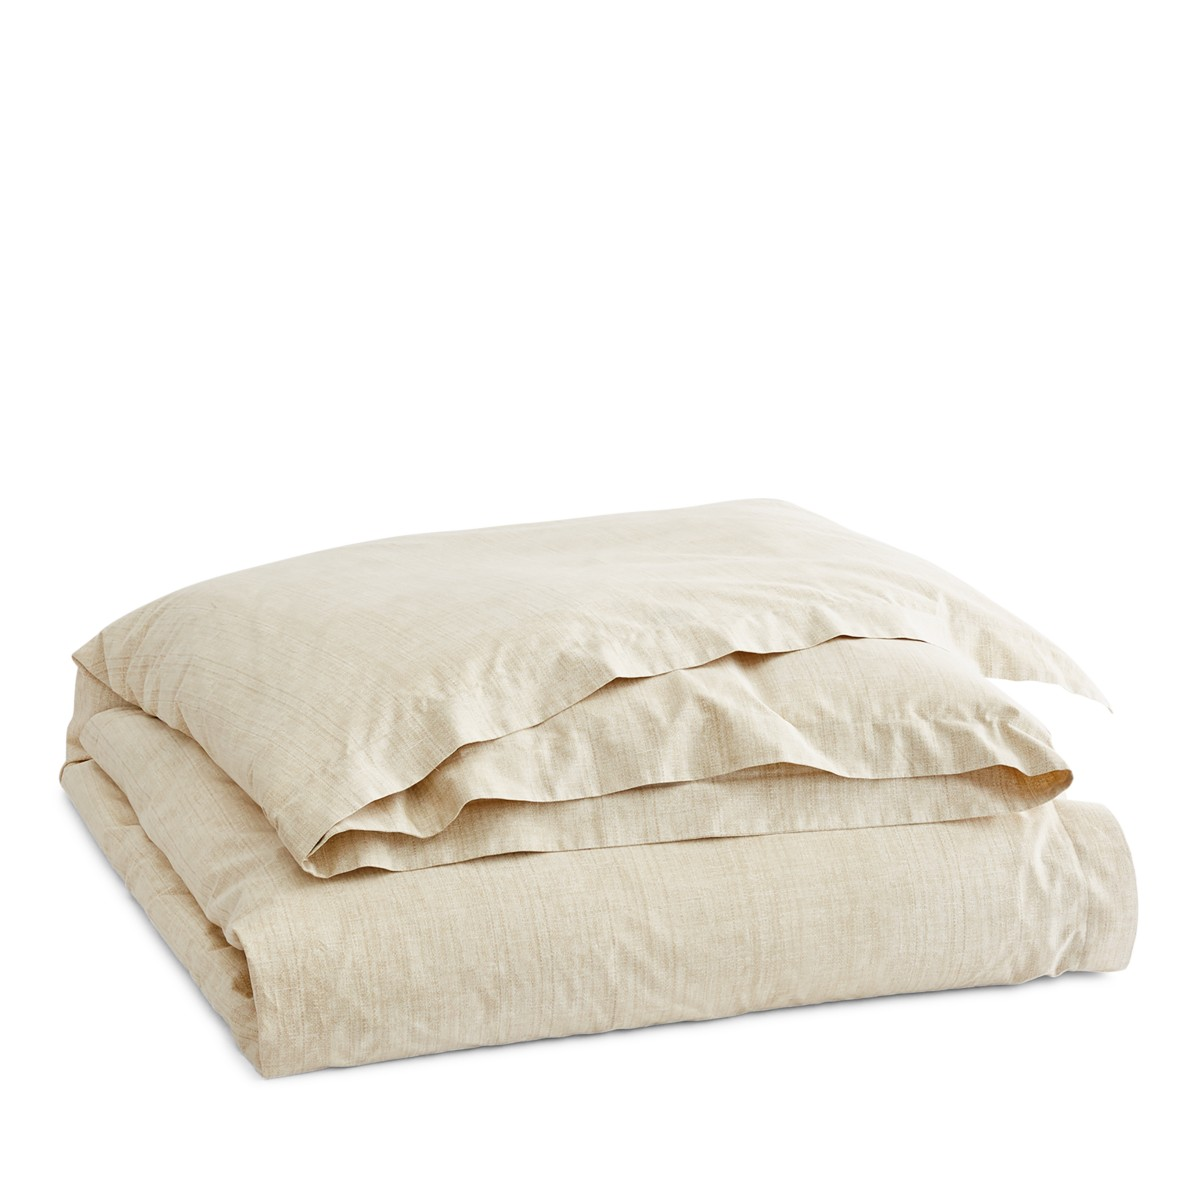 Ralph Lauren Mulholland Drive Reeves Duvet Cover, Queen